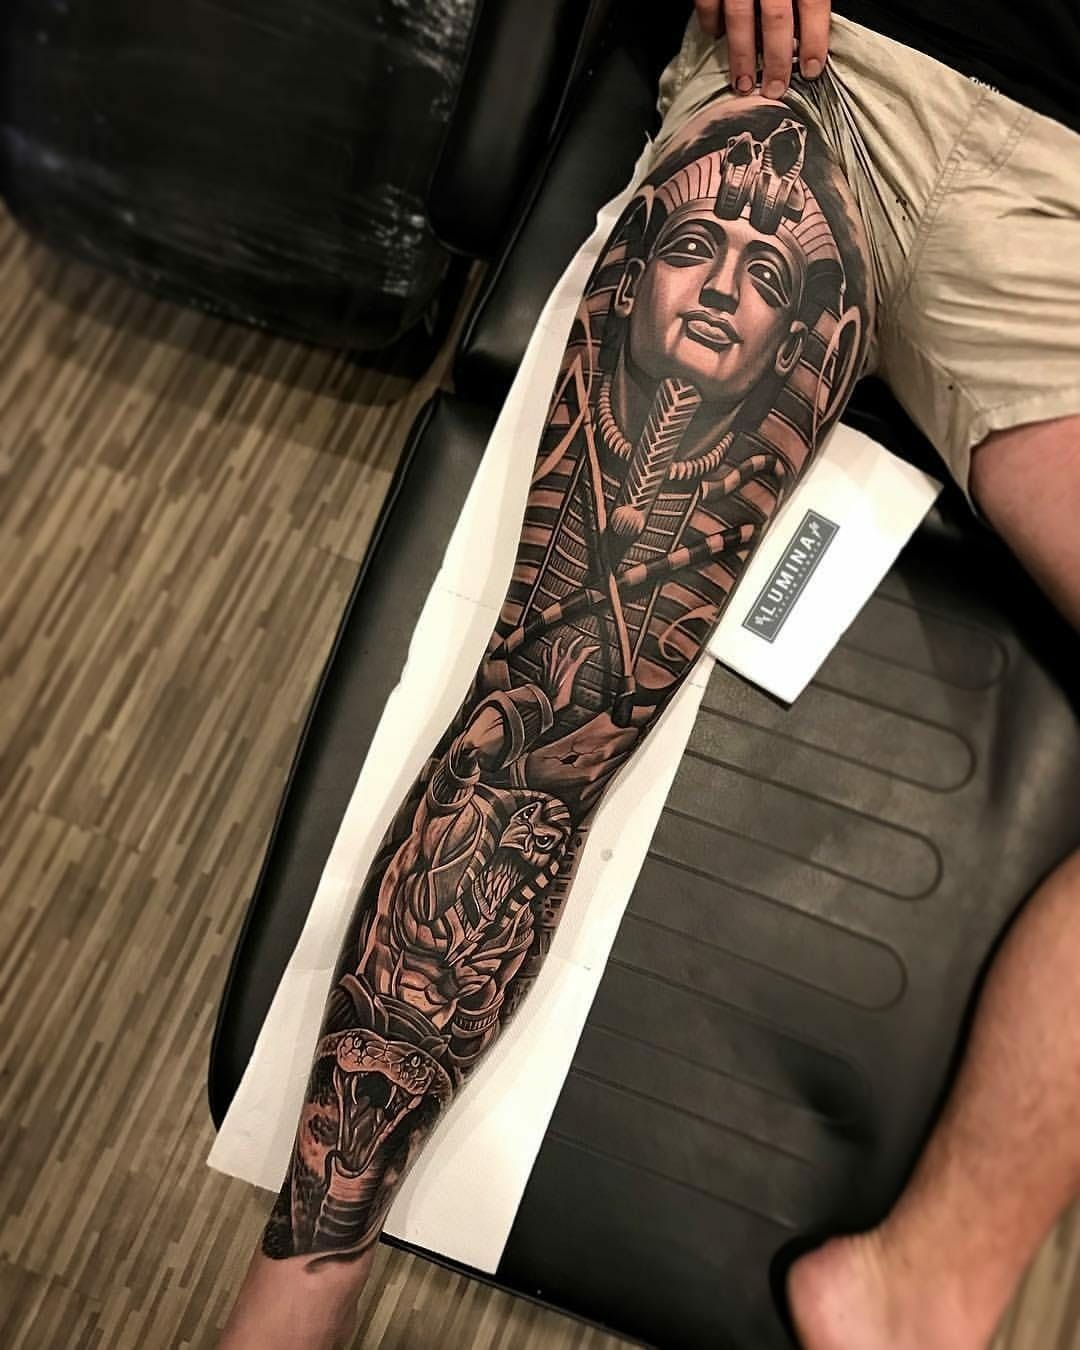 Pin By Assaf Hemmo On Ideas For Tattoos Egyptian Tattoo Sleeve Leg Tattoos Egyptian Tattoo